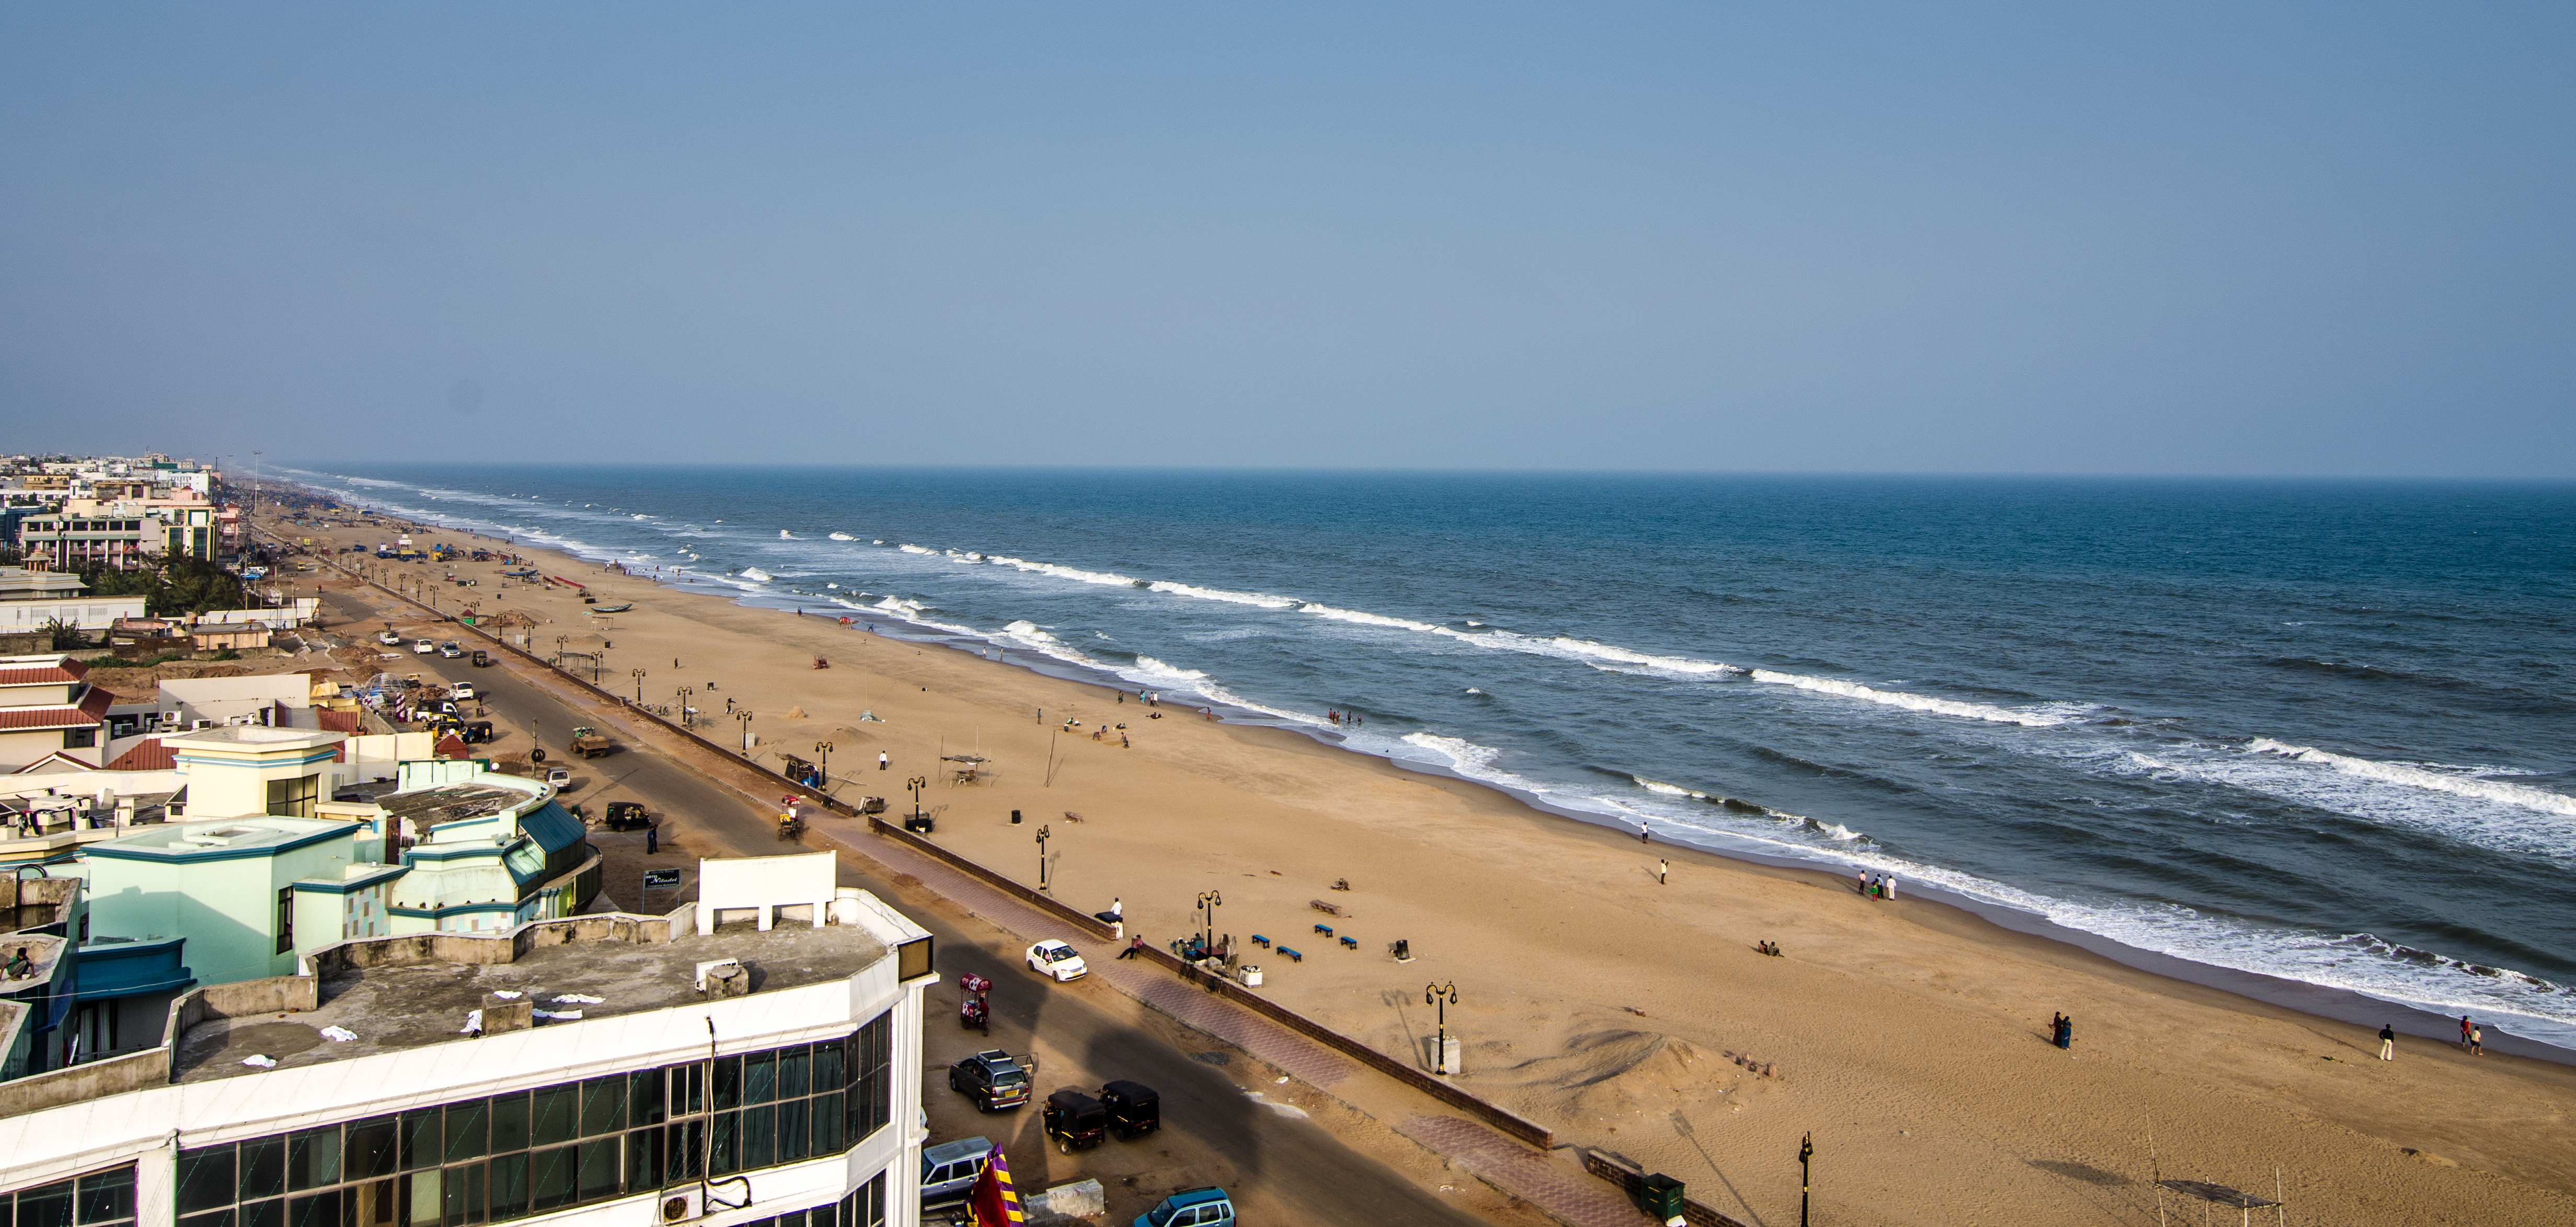 file:puri sea beach viewed from the light house - wikimedia commons